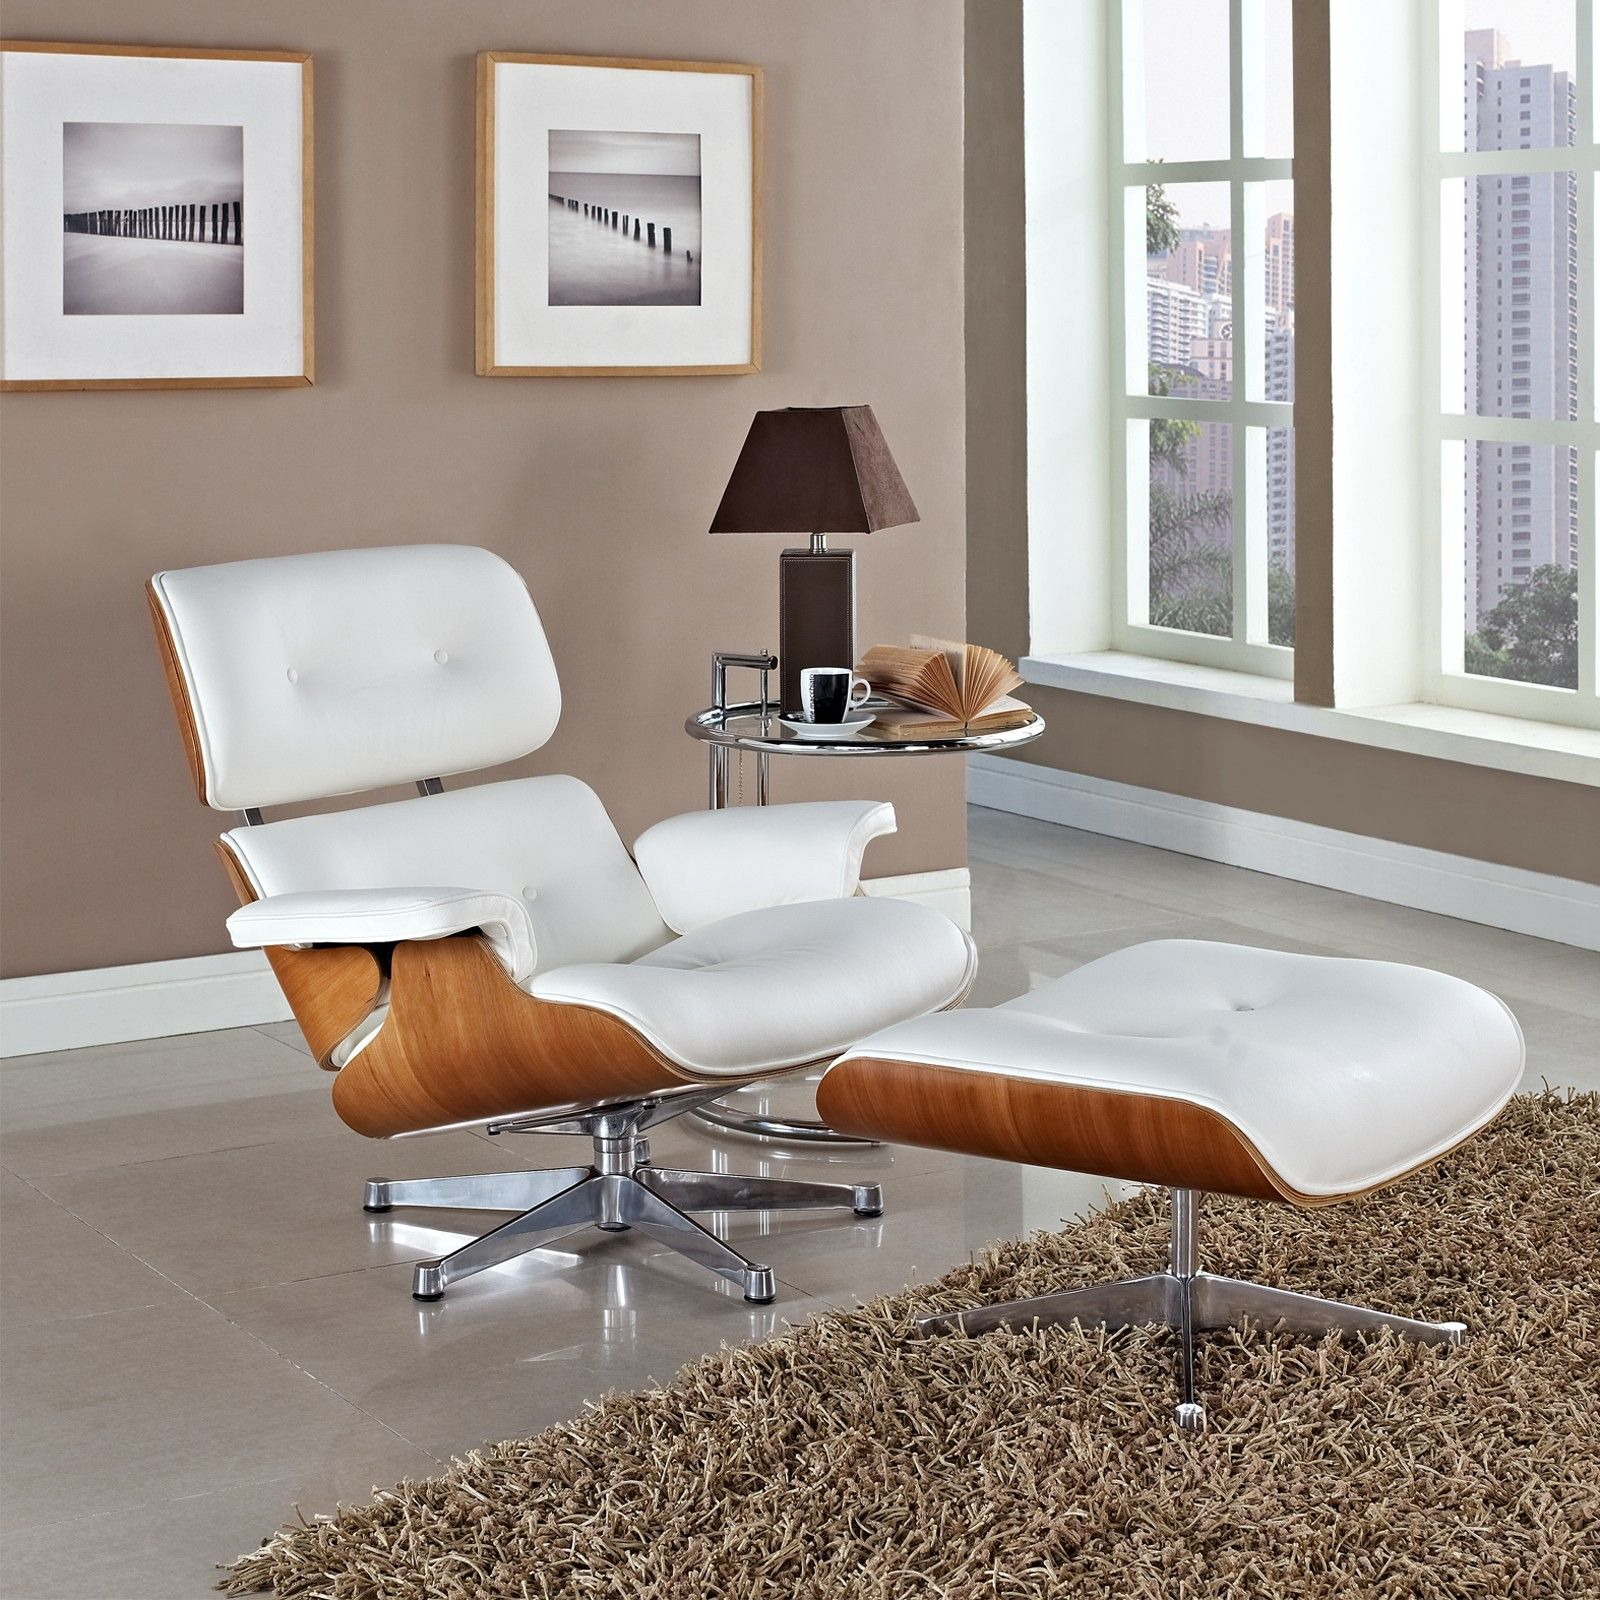 Tremendous Eames Lounge Chair Charles Ray Eames 1956 American Alphanode Cool Chair Designs And Ideas Alphanodeonline